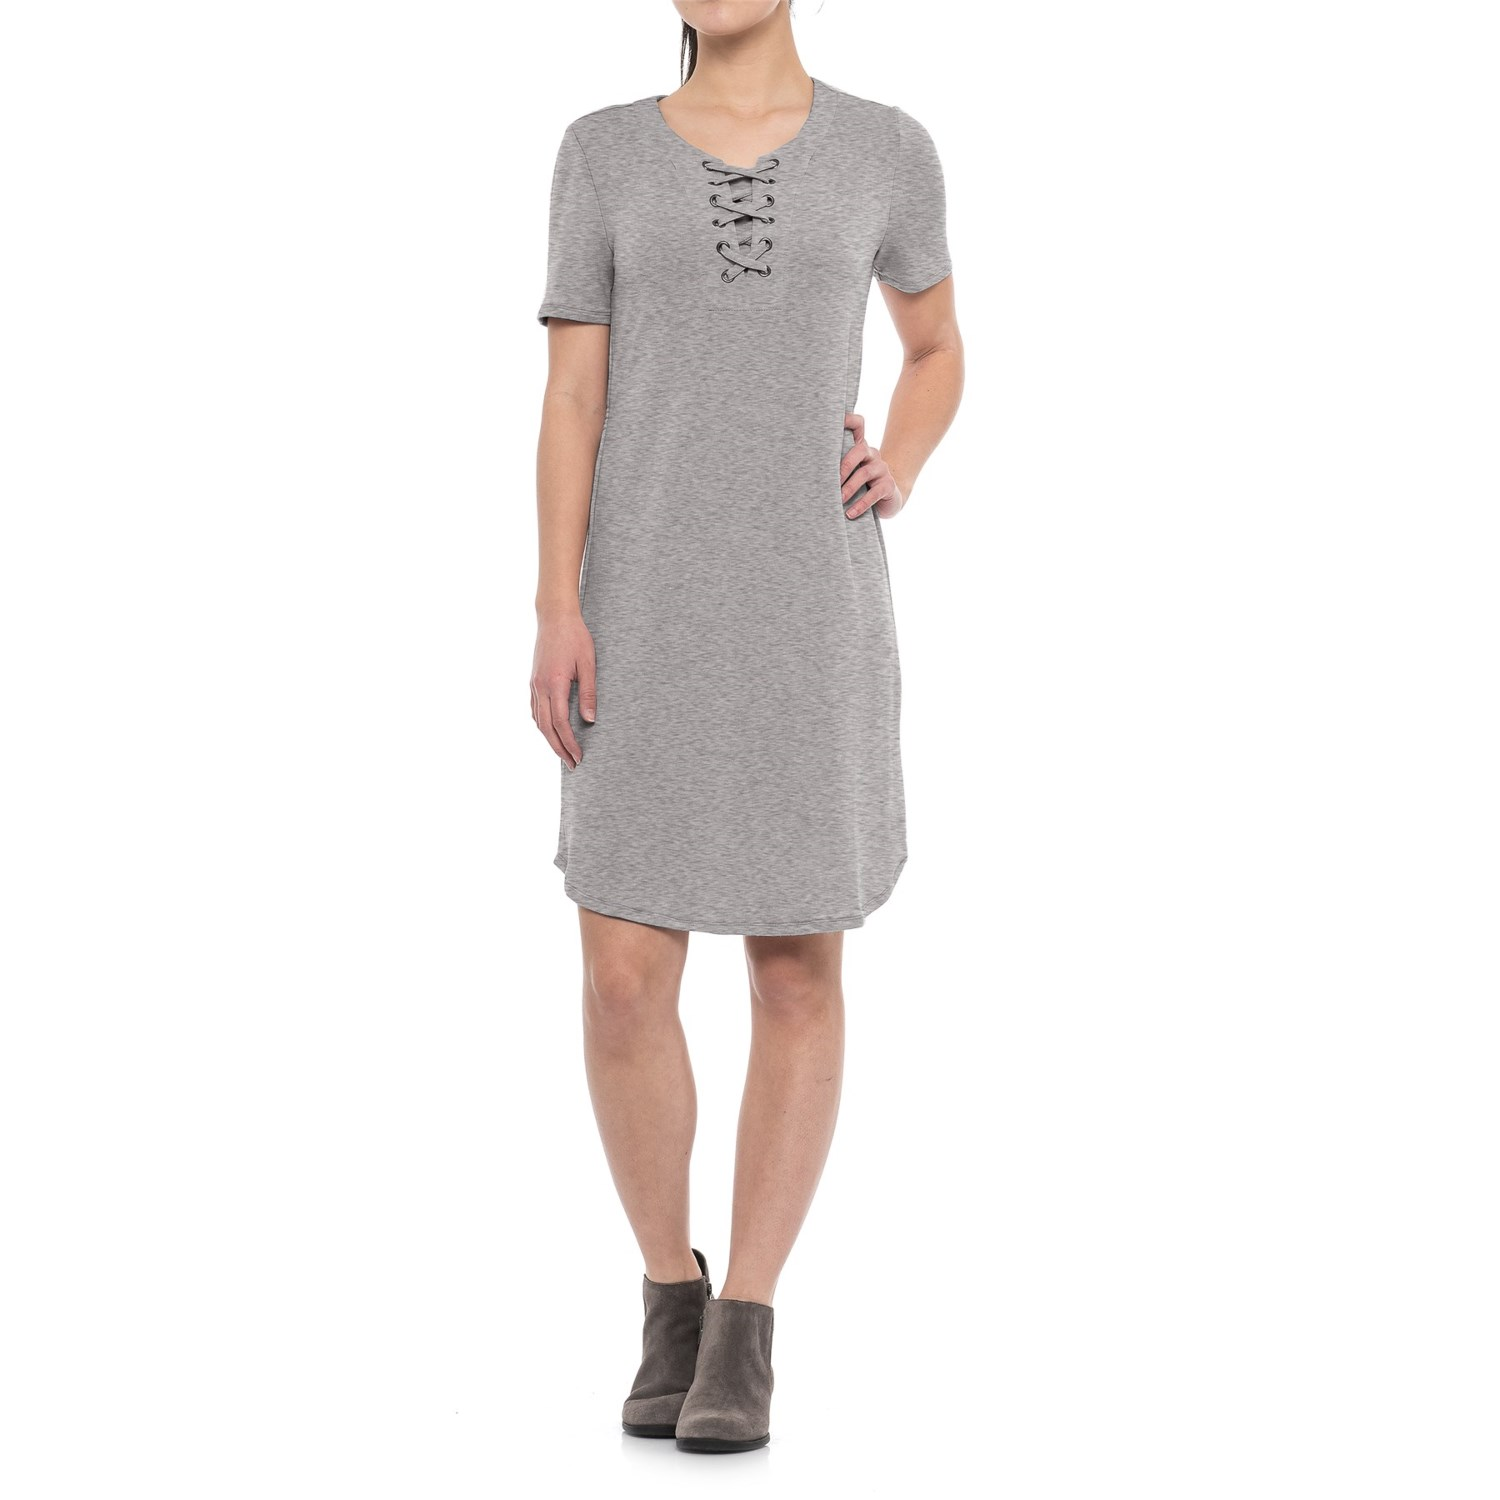 CG Cable & Gauge Lace-Up Dress (For Women) - Save 48%